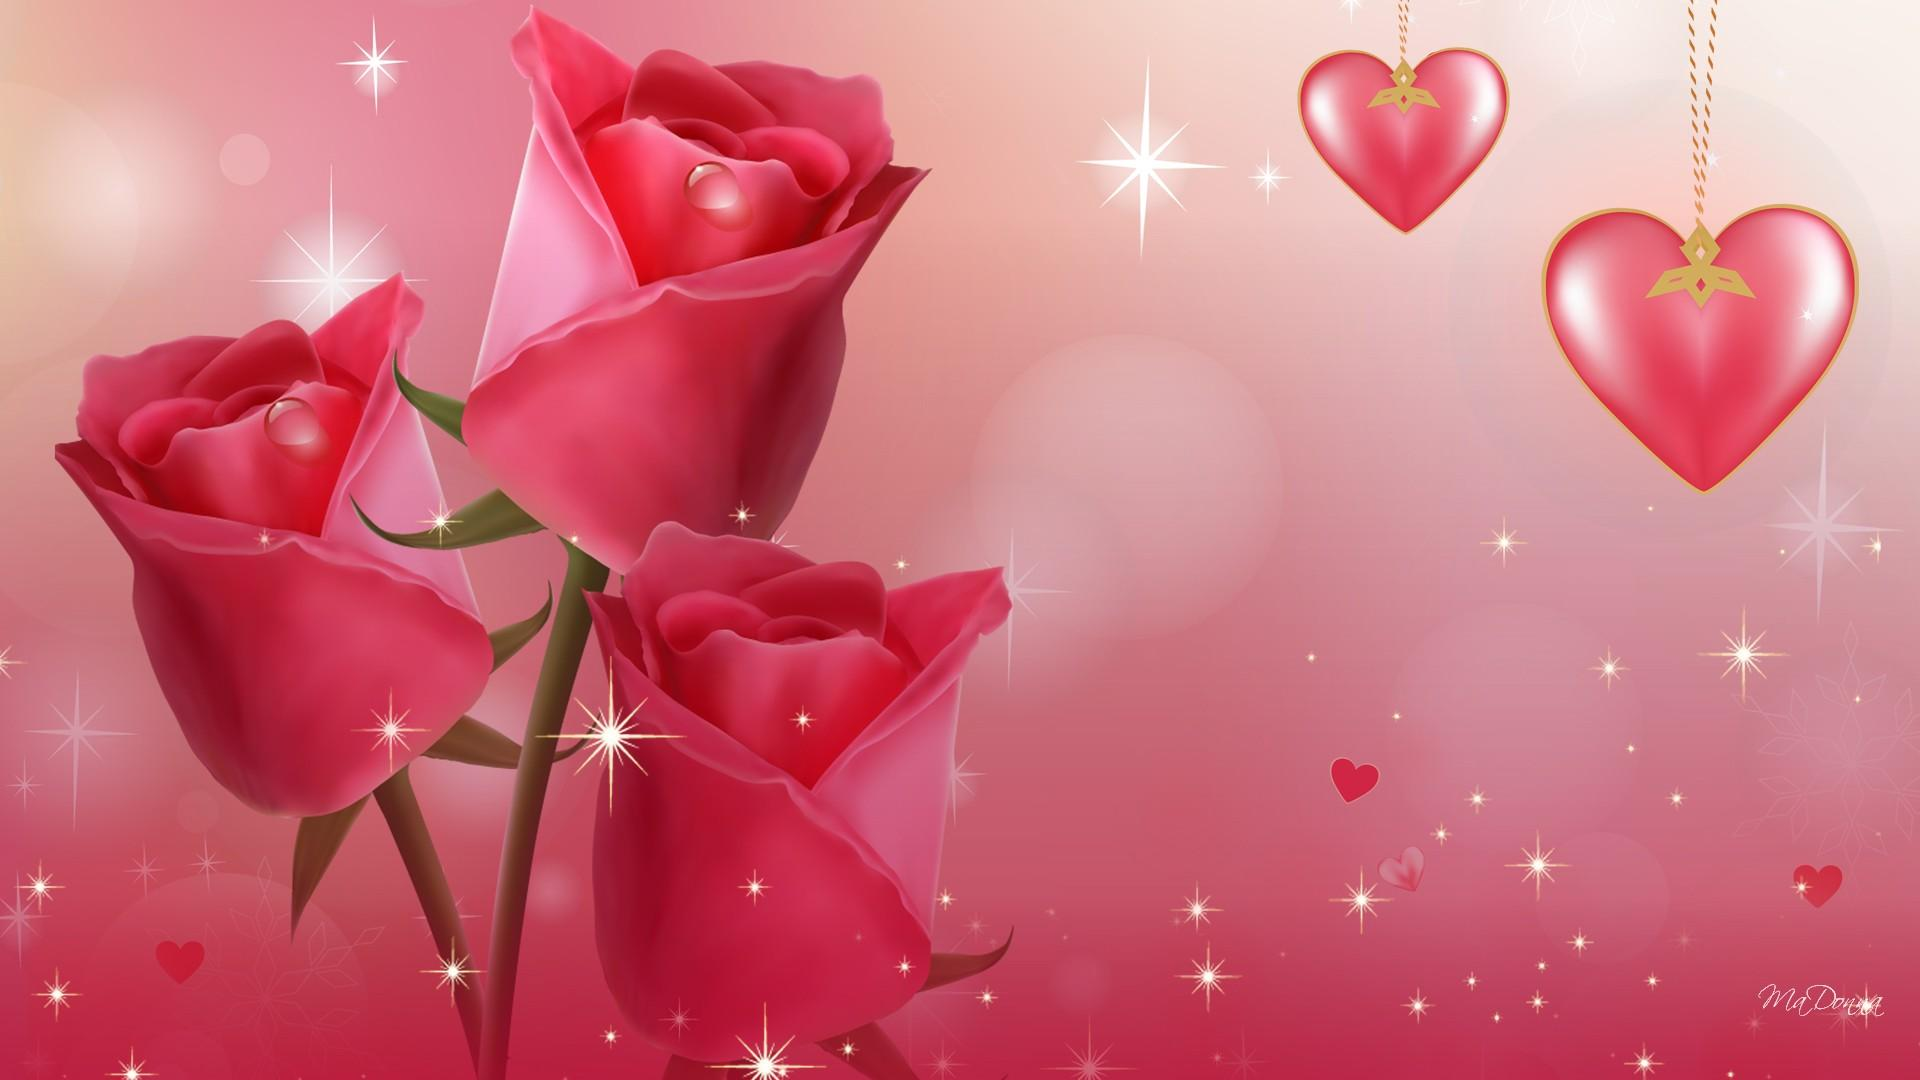 Beautiful Love Wallpaper Hd: World's Top 100 Beautiful Flowers Images Wallpaper Photos